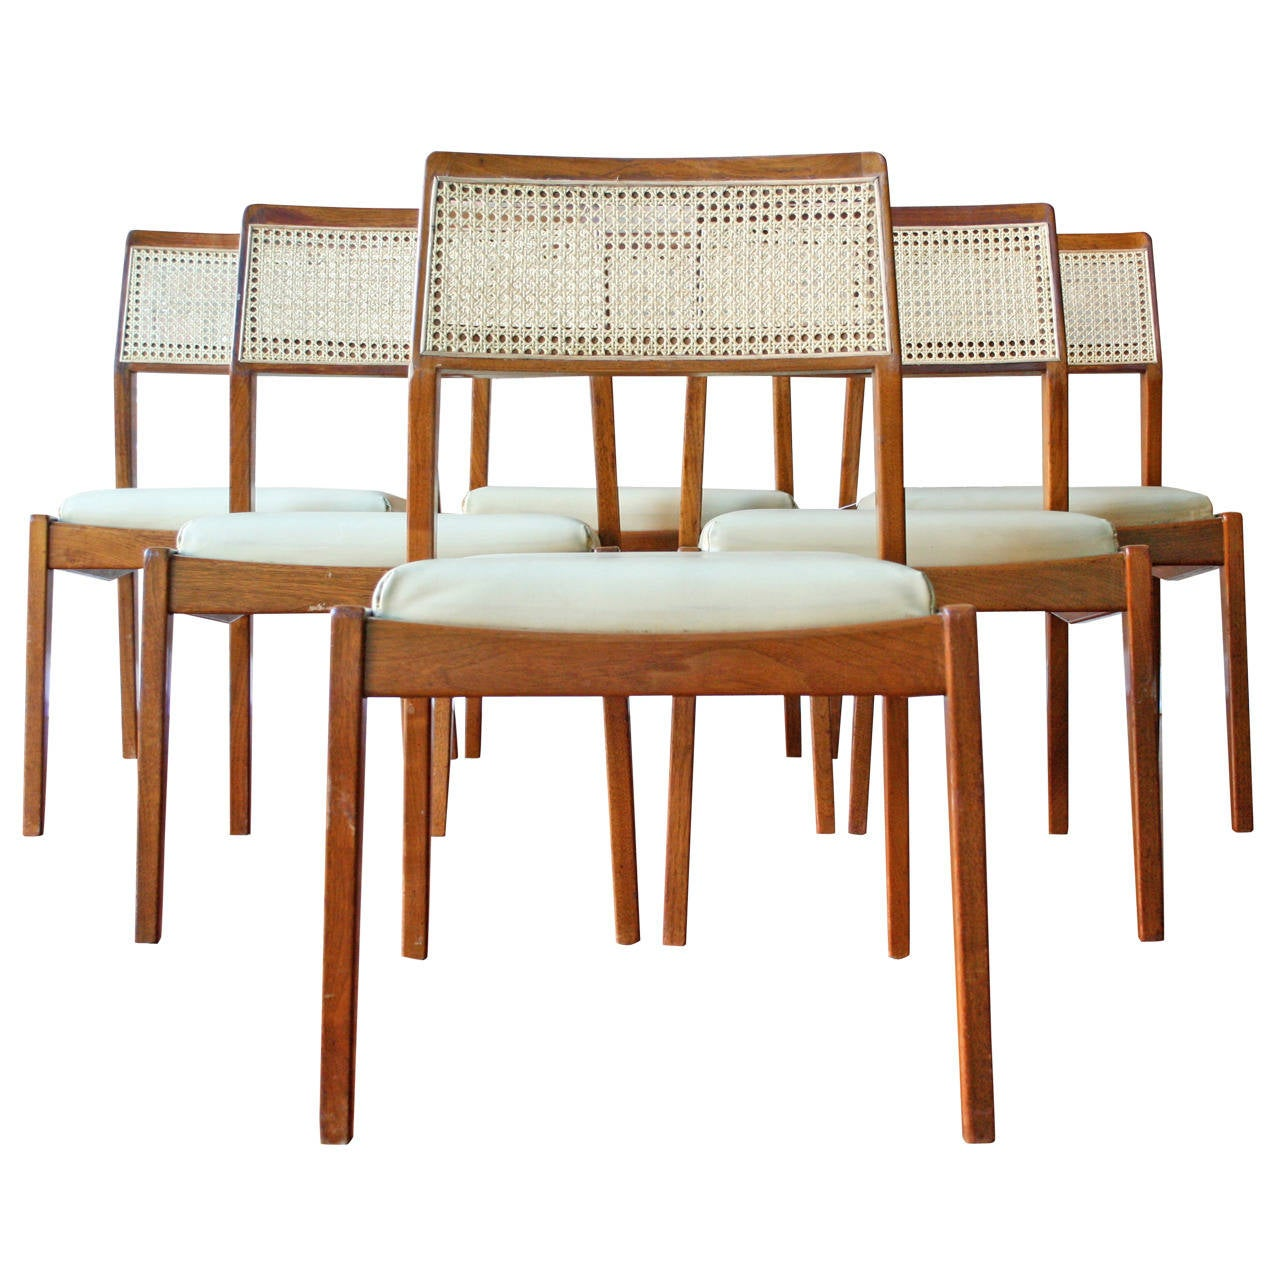 Set of six walnut 39 payboy 39 dining chairs by jens risom at 1stdibs - Jens risom dining chairs ...